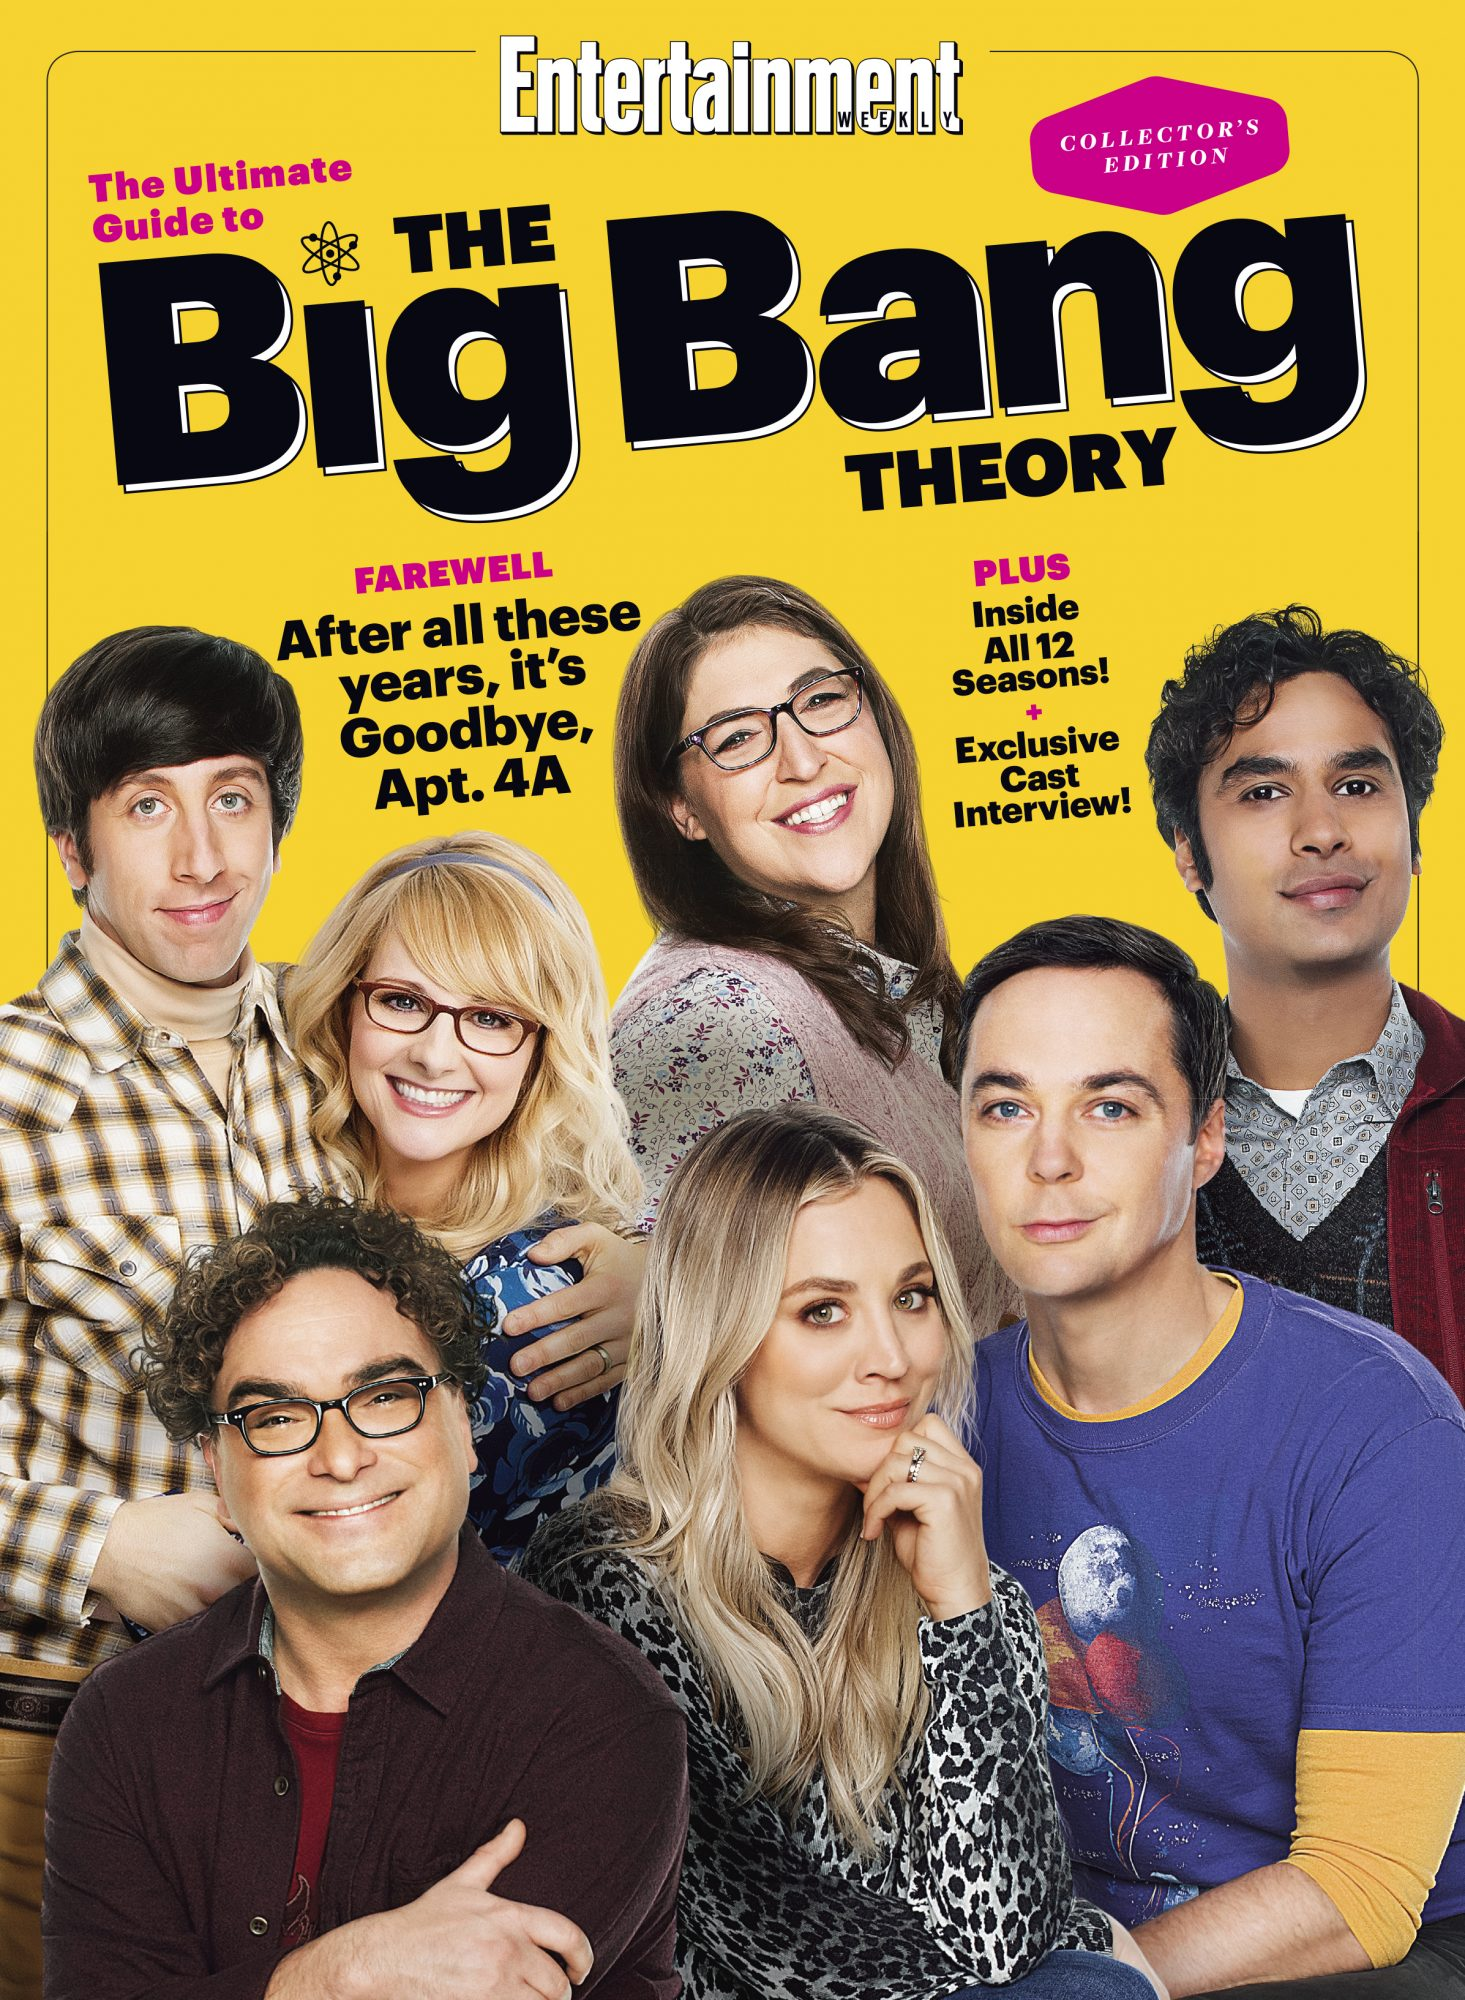 The Ultimate Guide to the Big Bang Theory